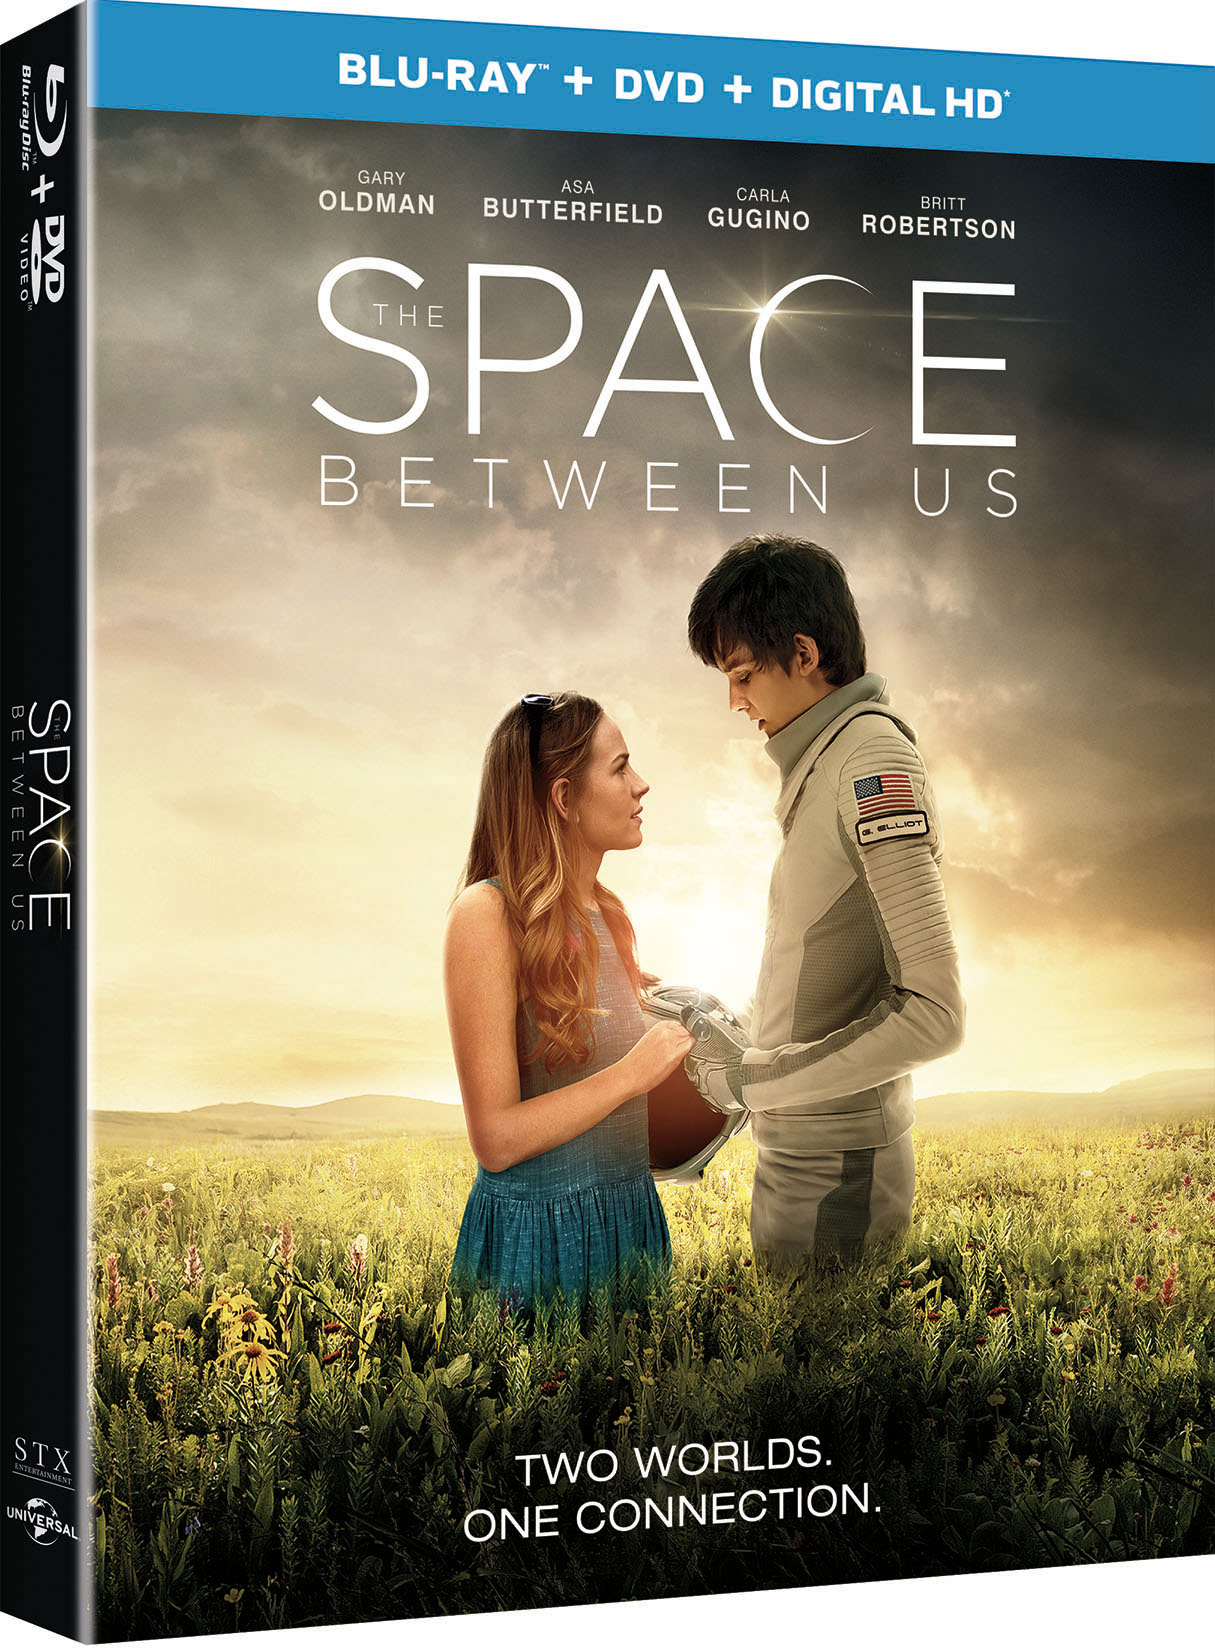 The Space Between Us Blu-ray Review